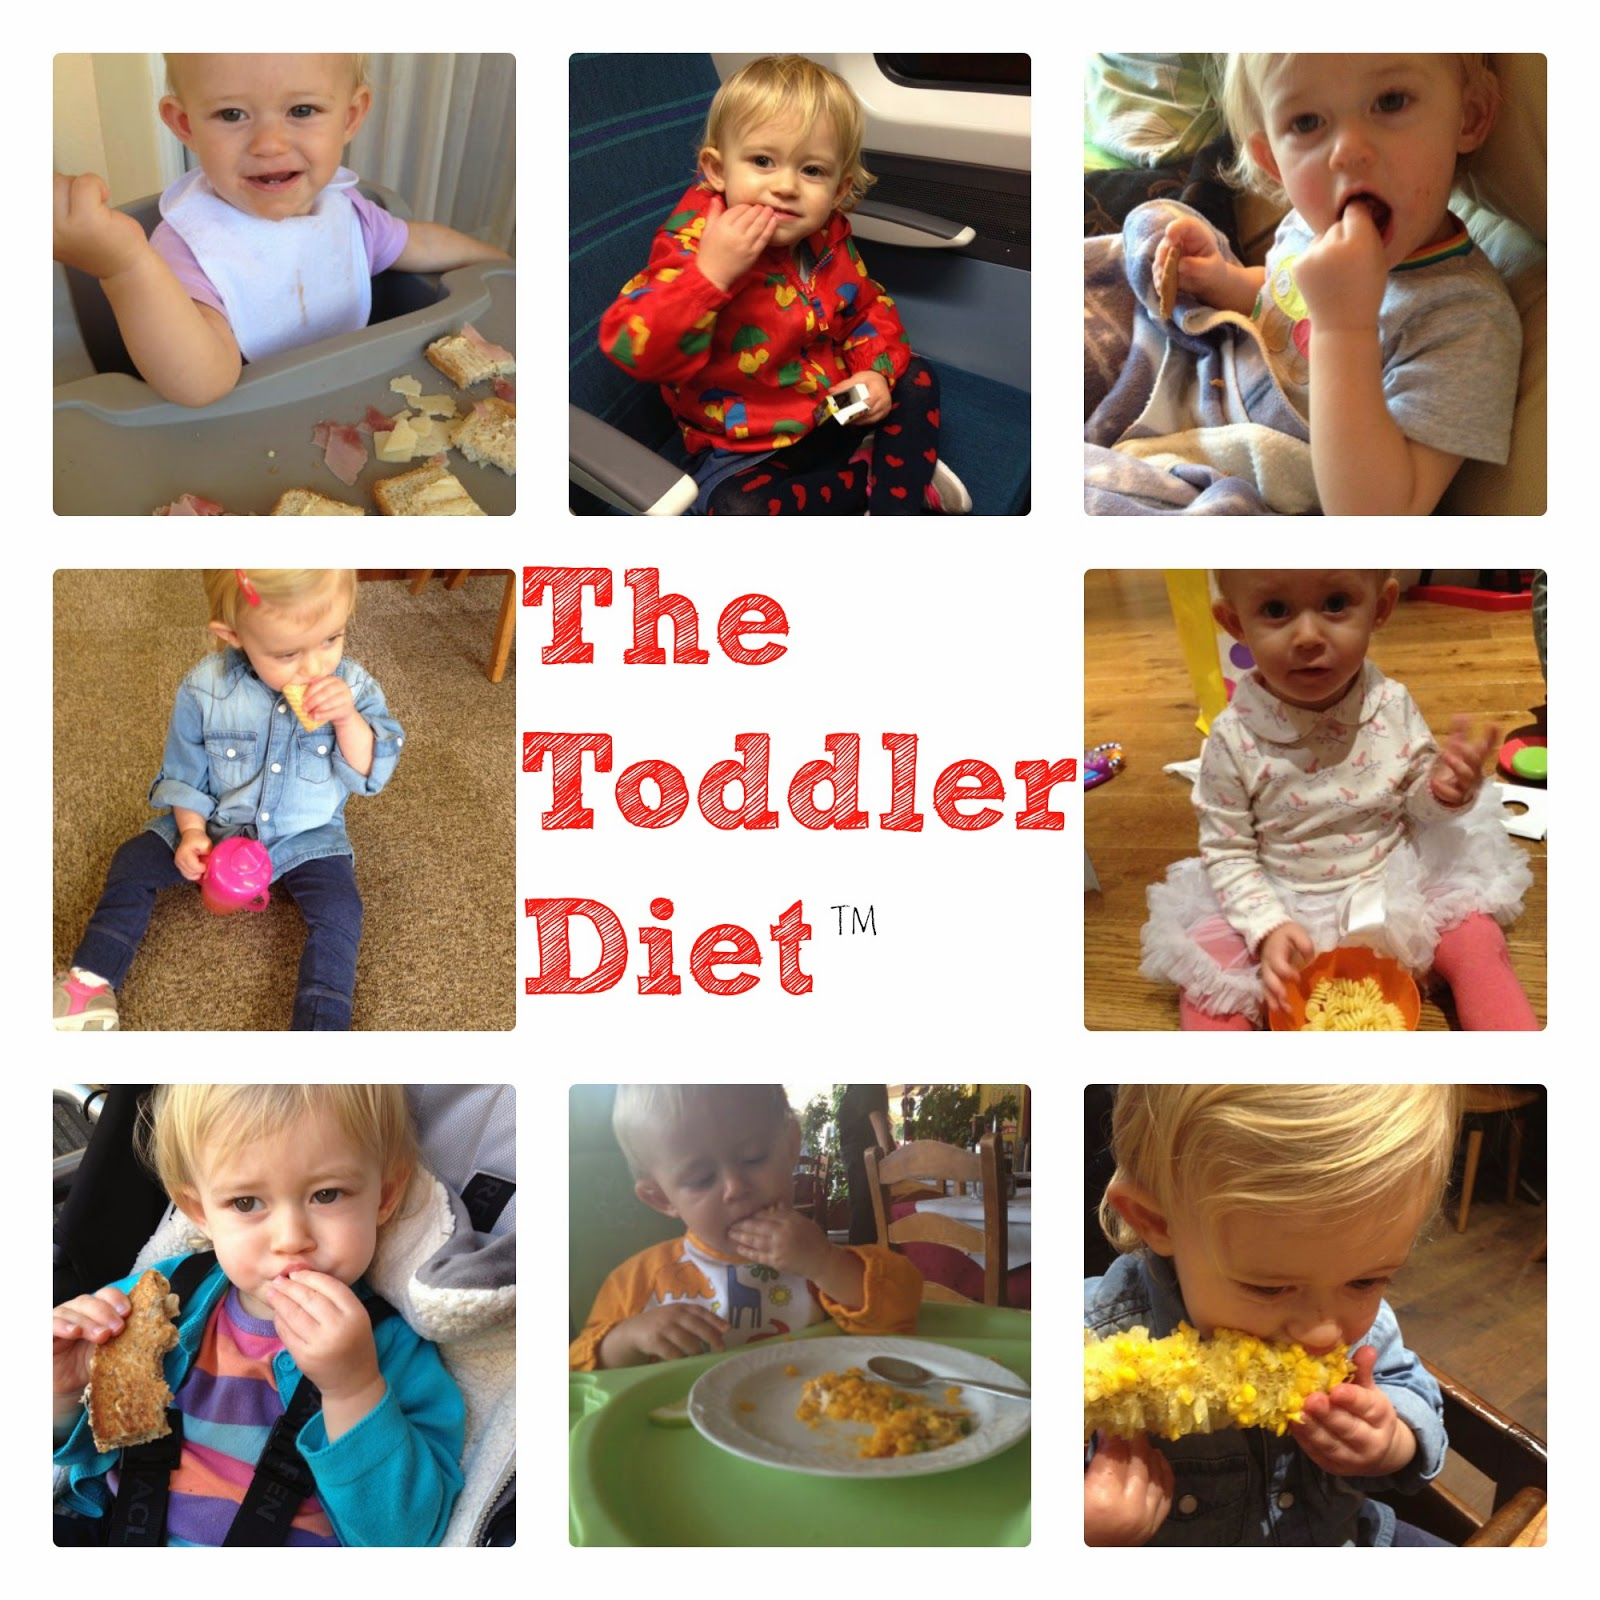 20 Diet tips I can learn from my Toddler | toddler eating habits | food | diest | weight watchers | slimming world |slim fast| dieting | nu beginnings | jason vale | juicing | slimming | thin | fat | toddler foods | eating | diet tips for mums | mamasvib | blog | health dieting tips and tricks | lose weight | eating for 2 | mamas vib | bonita turner | food